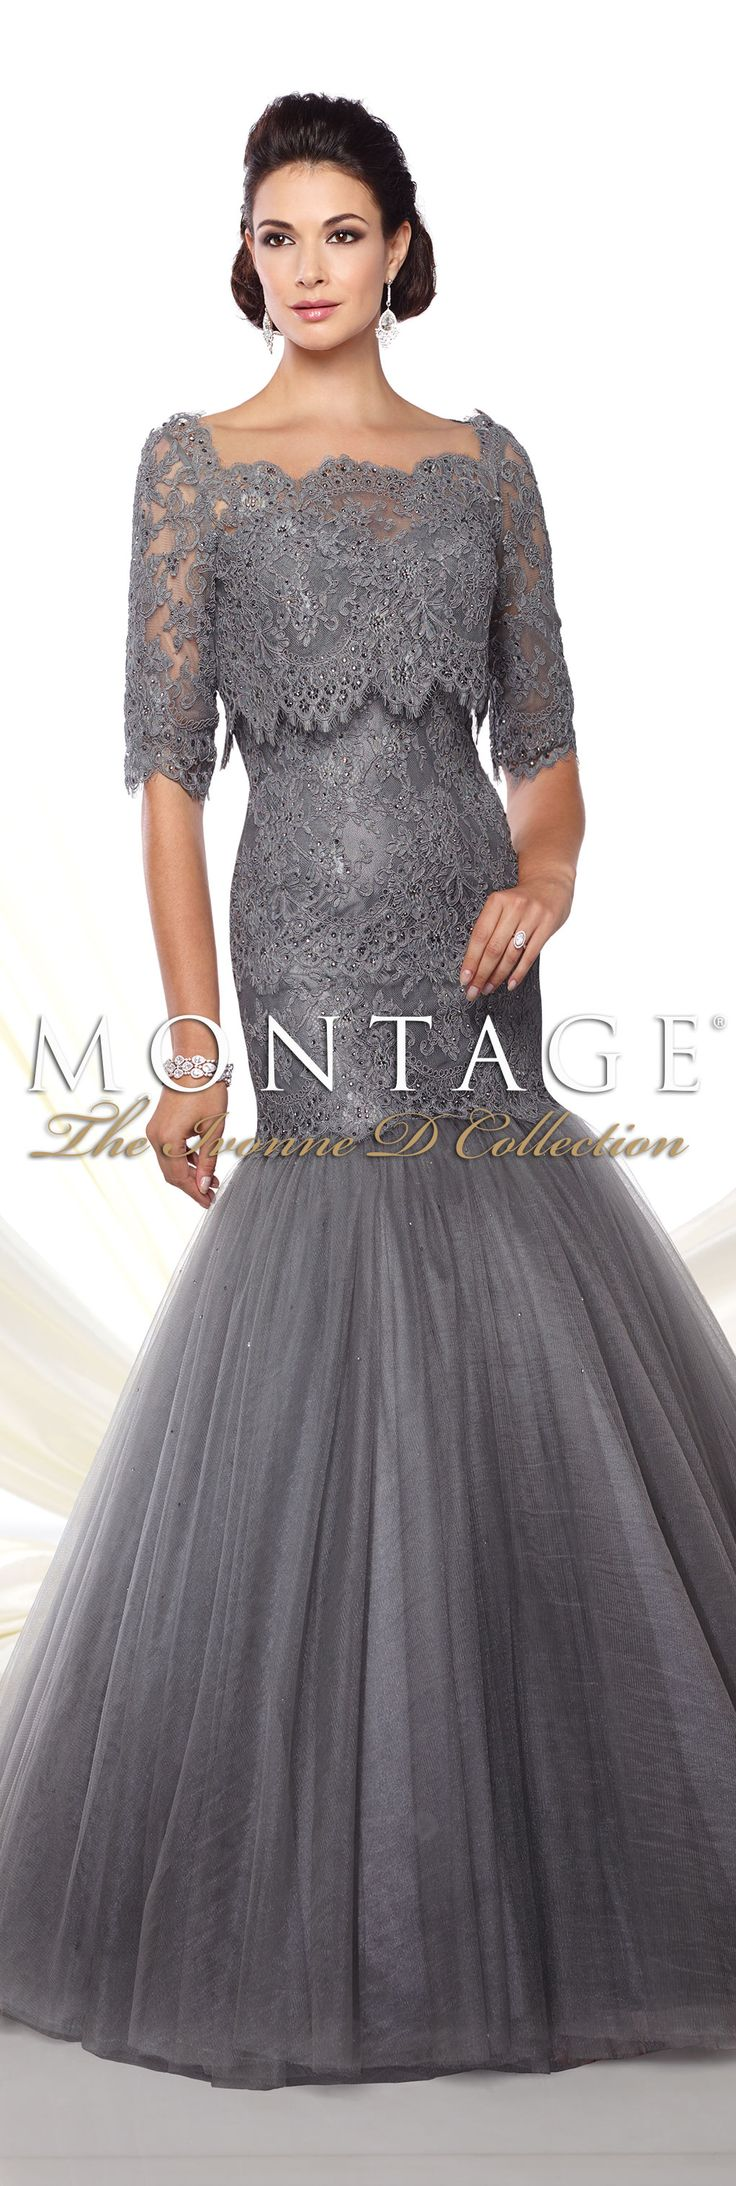 Montage The Ivonne D Collection Spring 2016 - Style No. 116D29 #eveninggowns